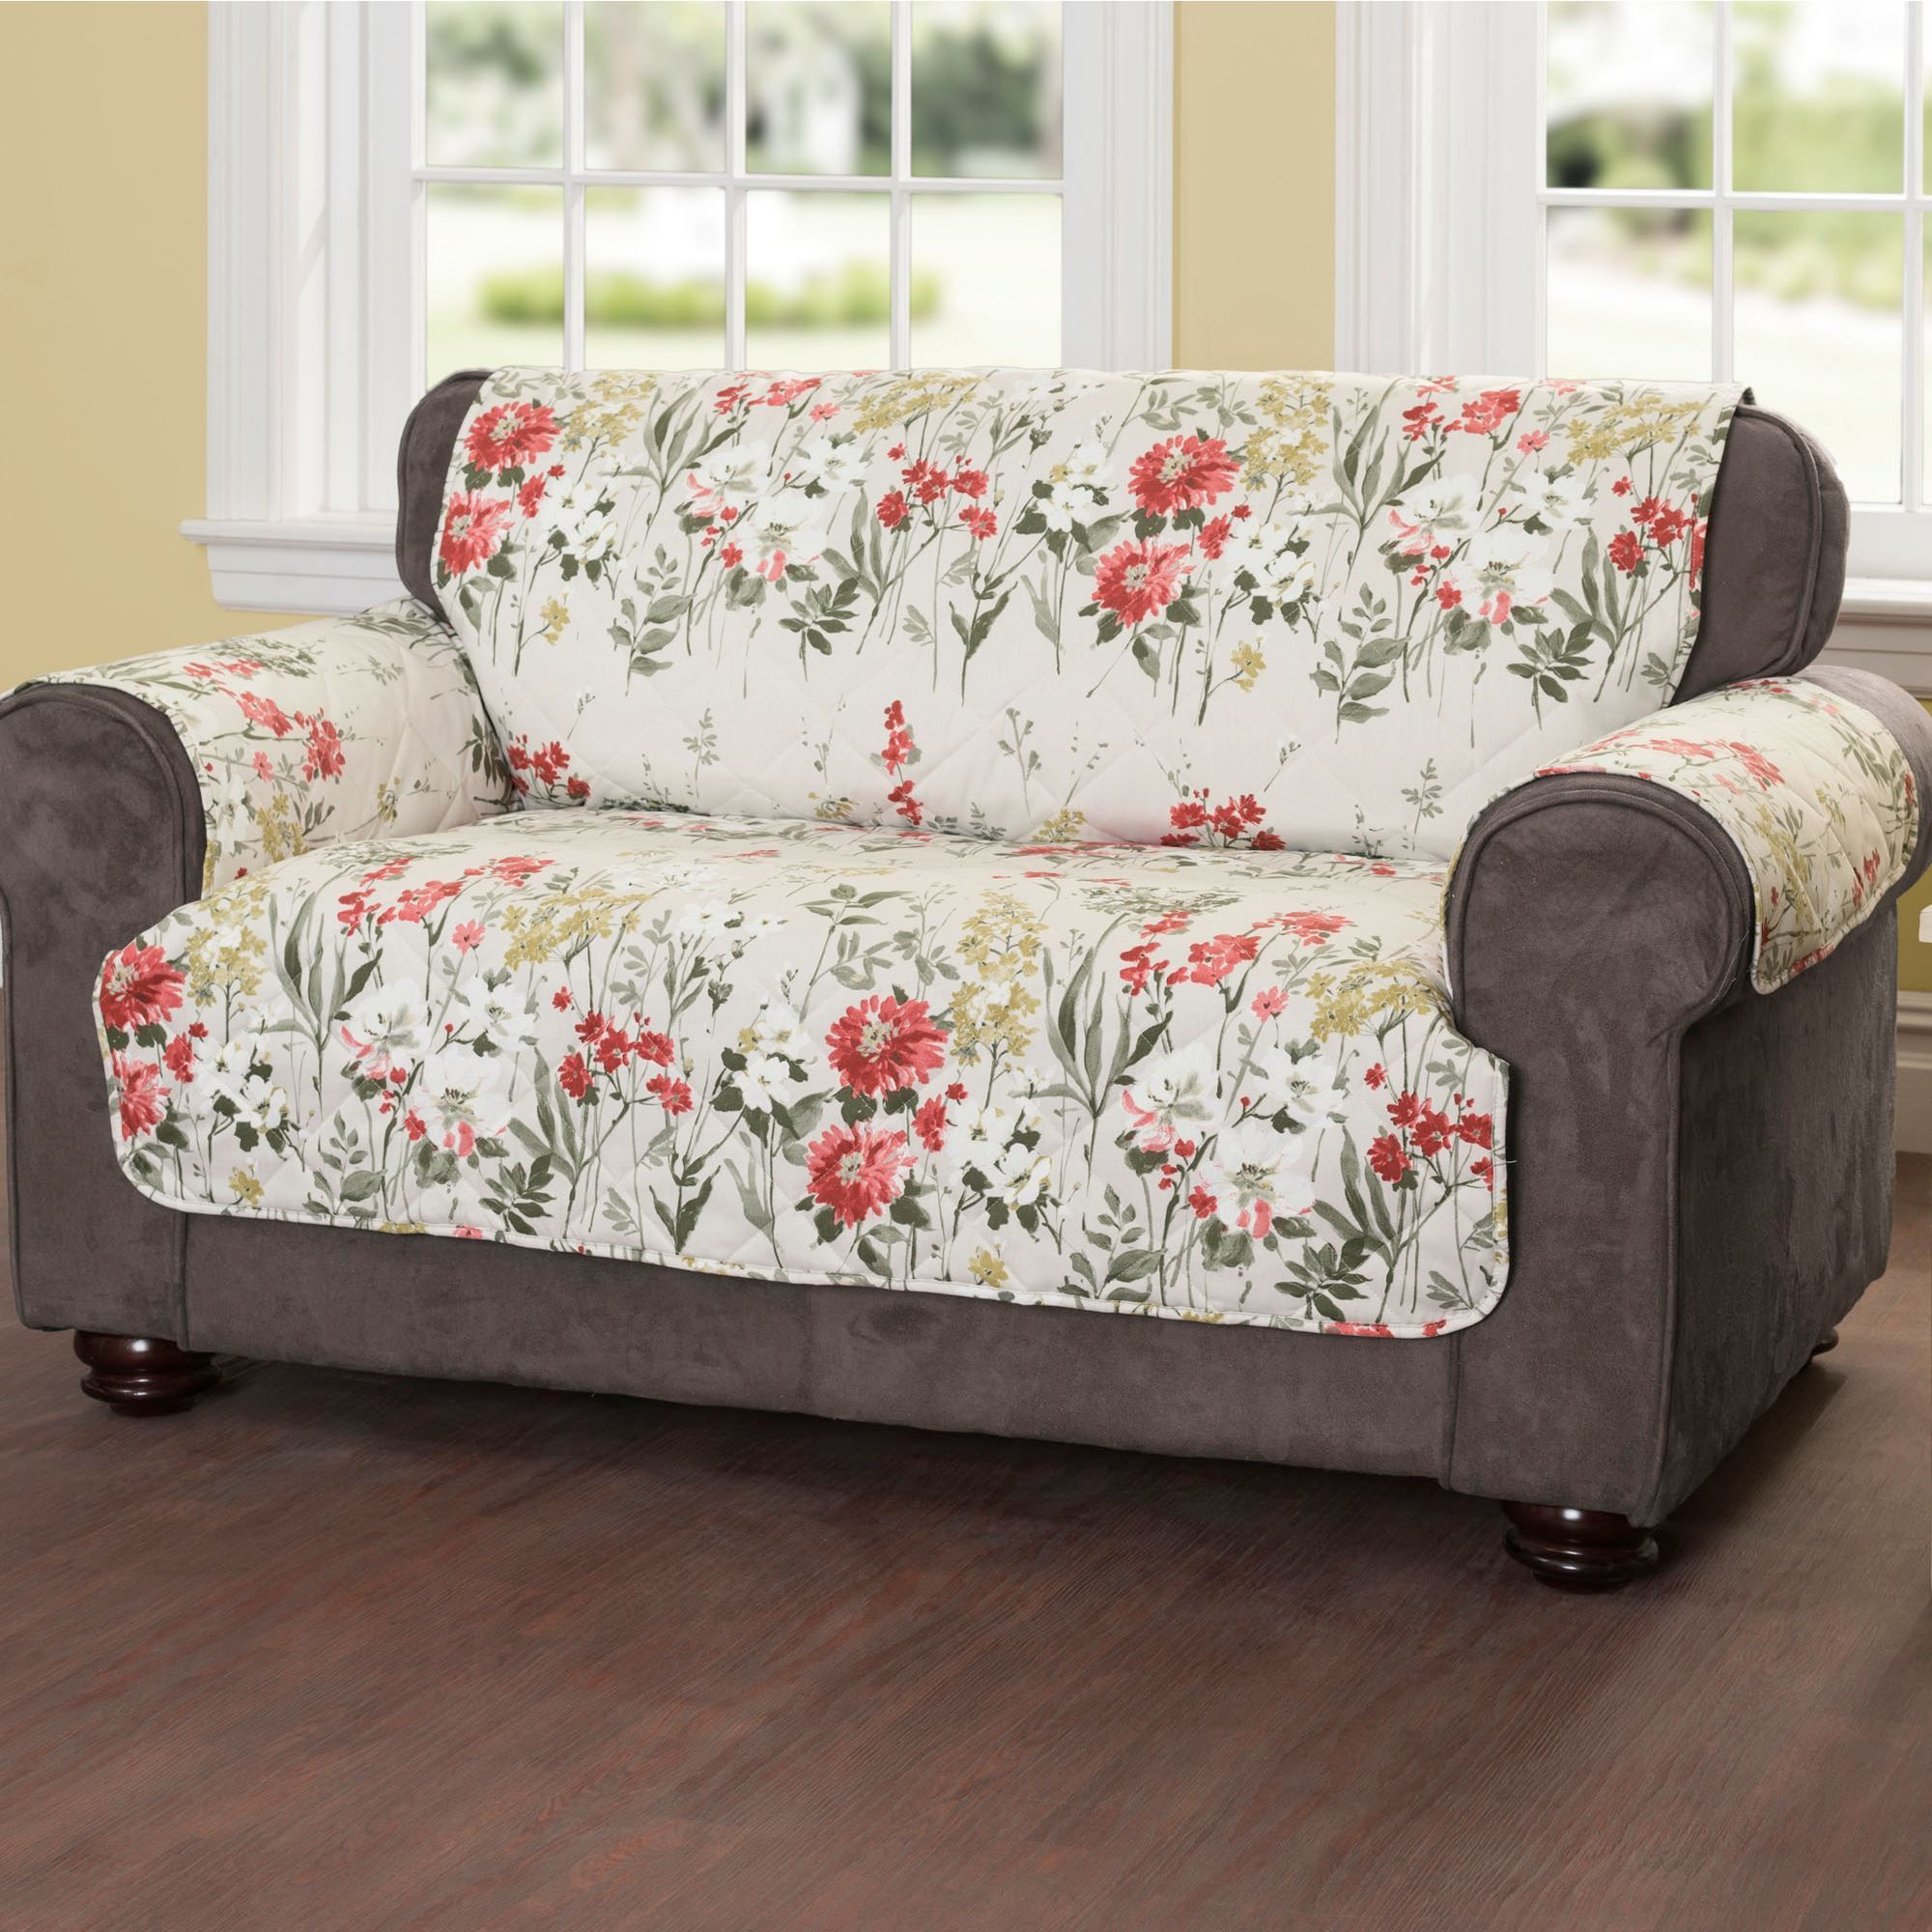 Quilted Lounge Chair Covers Floral Meadow Quilted Furniture Protectors Living Room